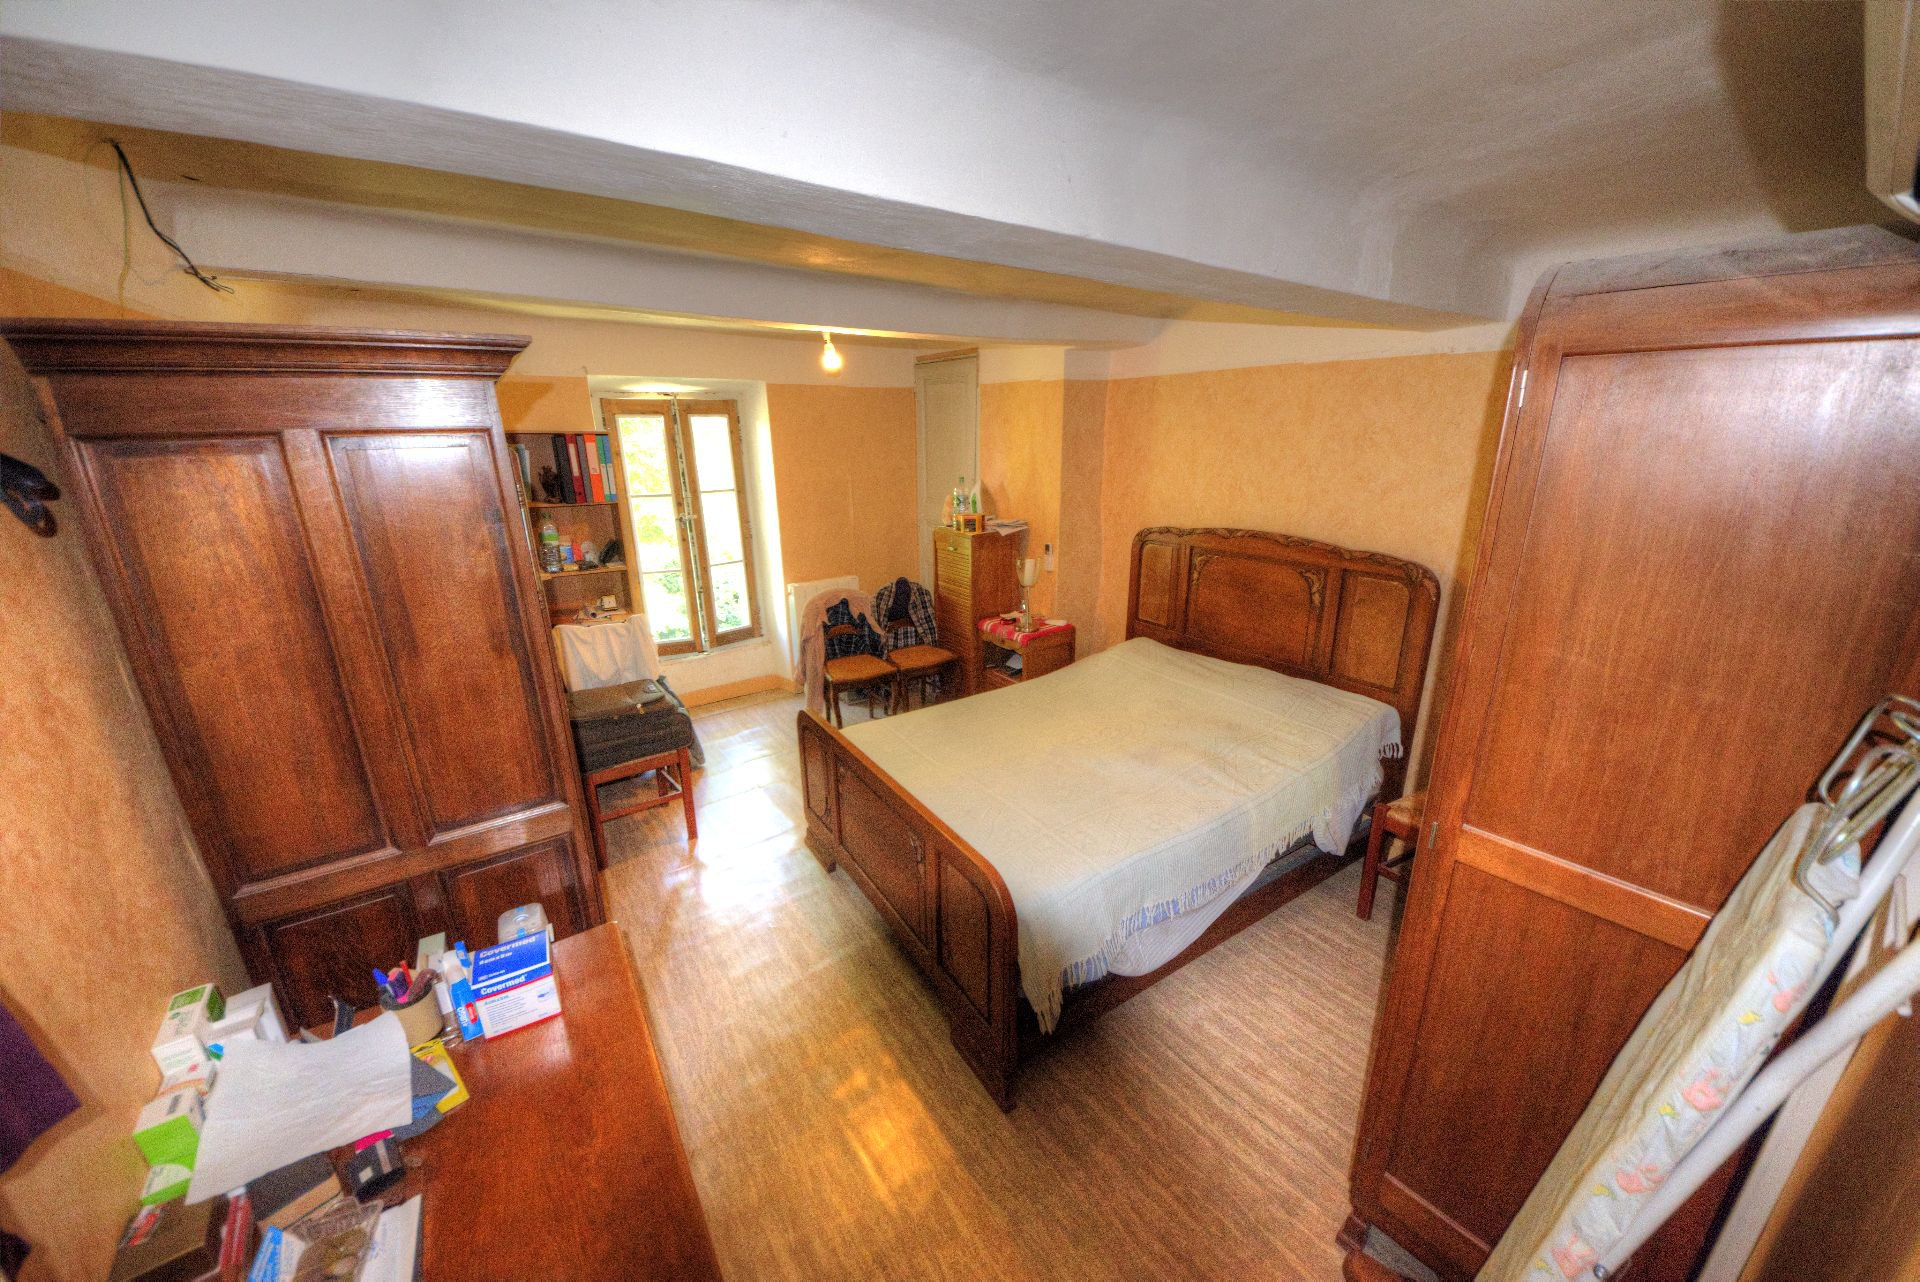 large bedroom in an old house Villecroze